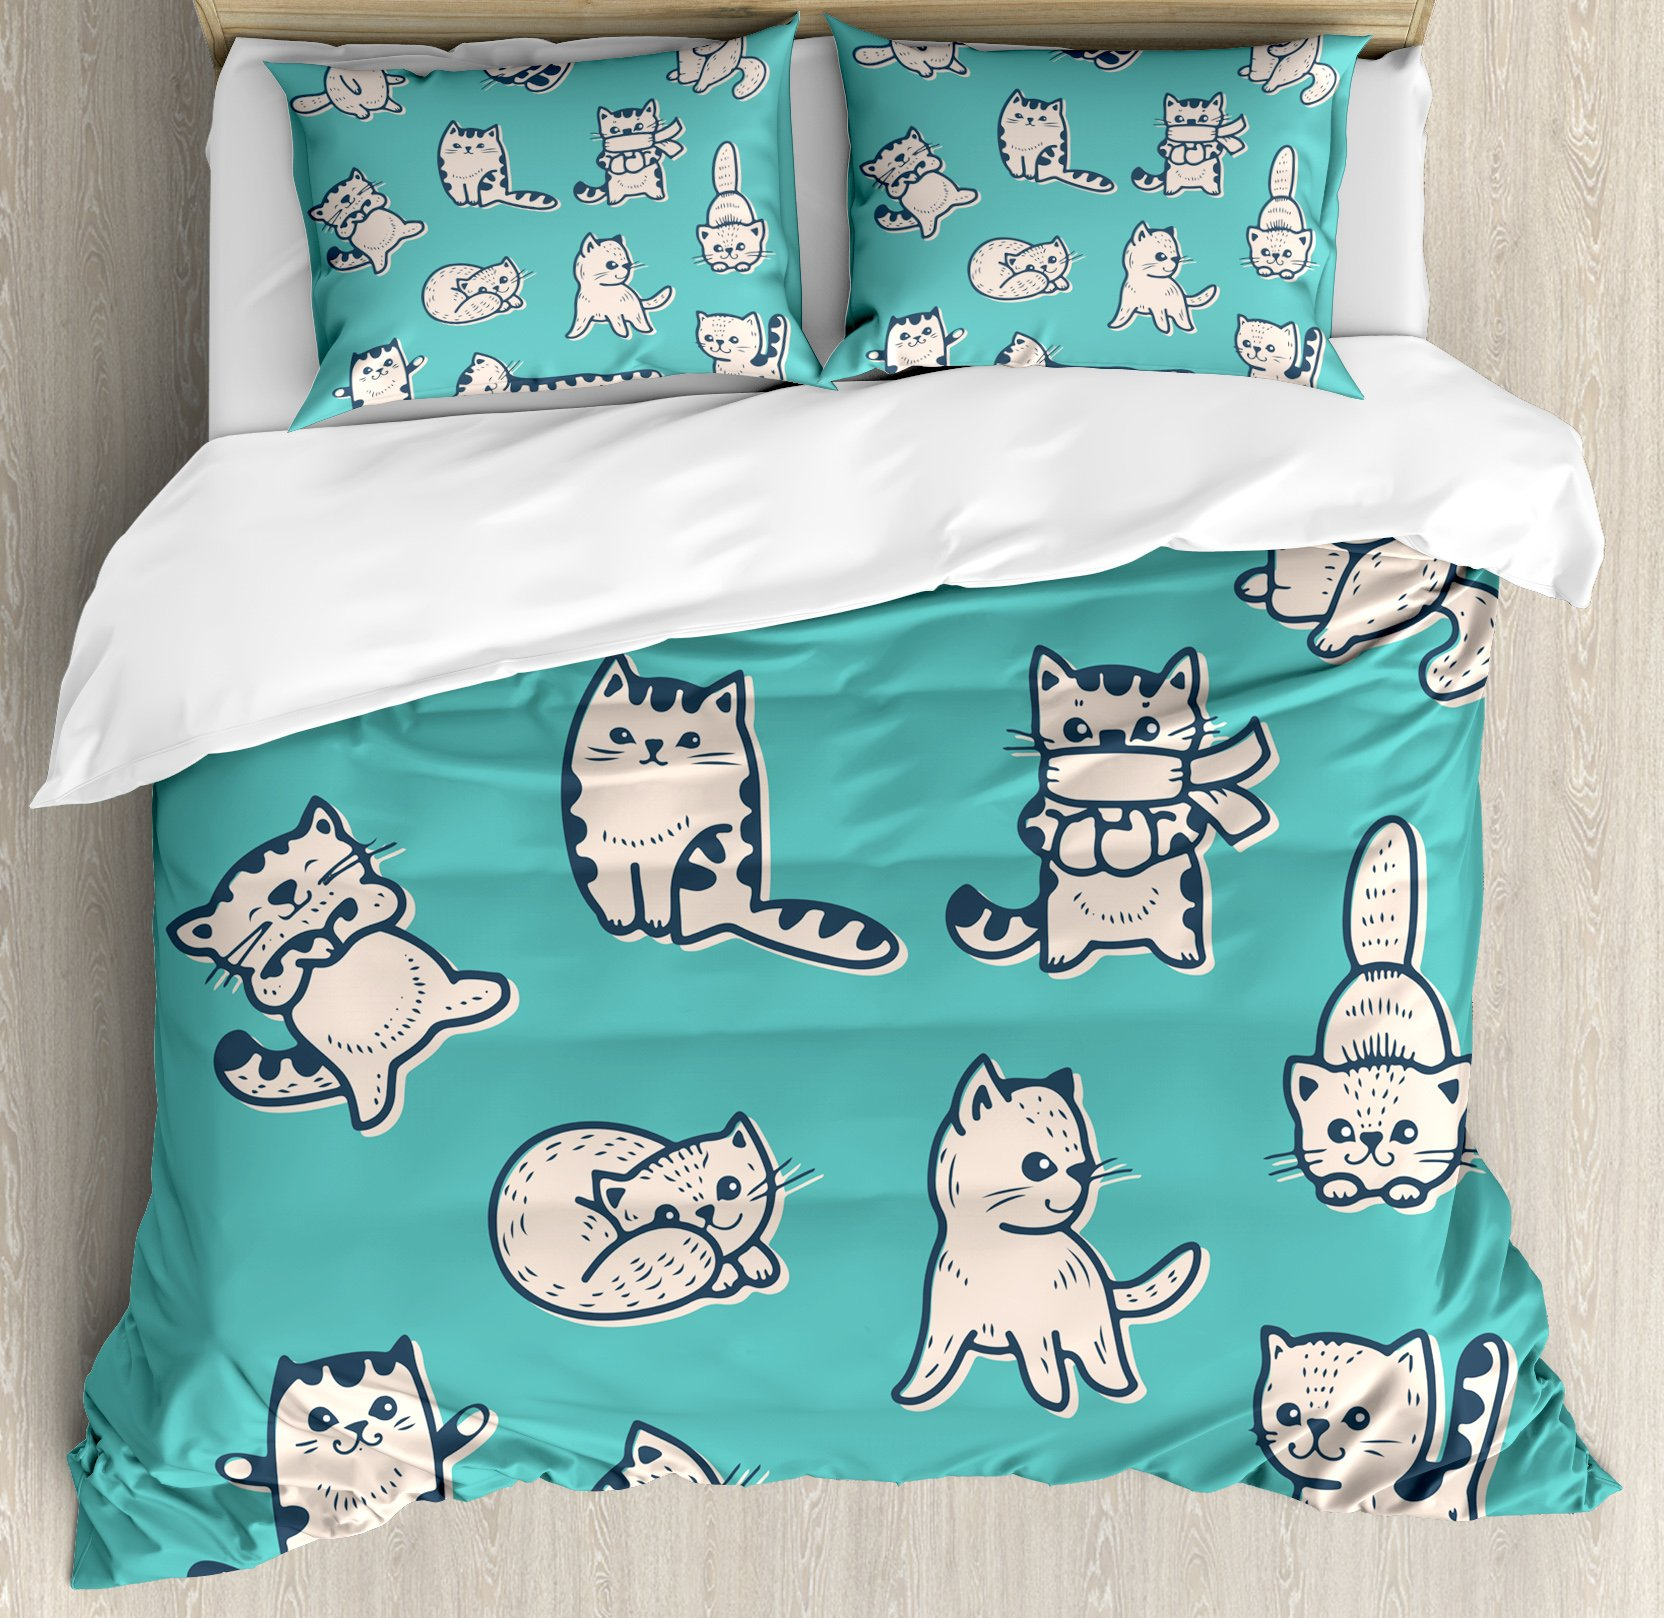 Funny Duvet Cover Set Queen Size by Ambesonne, Cute Kitties in Various Gestures Sleeping Playful Babyish Cat Animal Illustration, Decorative 3 Piece Bedding Set with 2 Pillow Shams, Aqua Cream